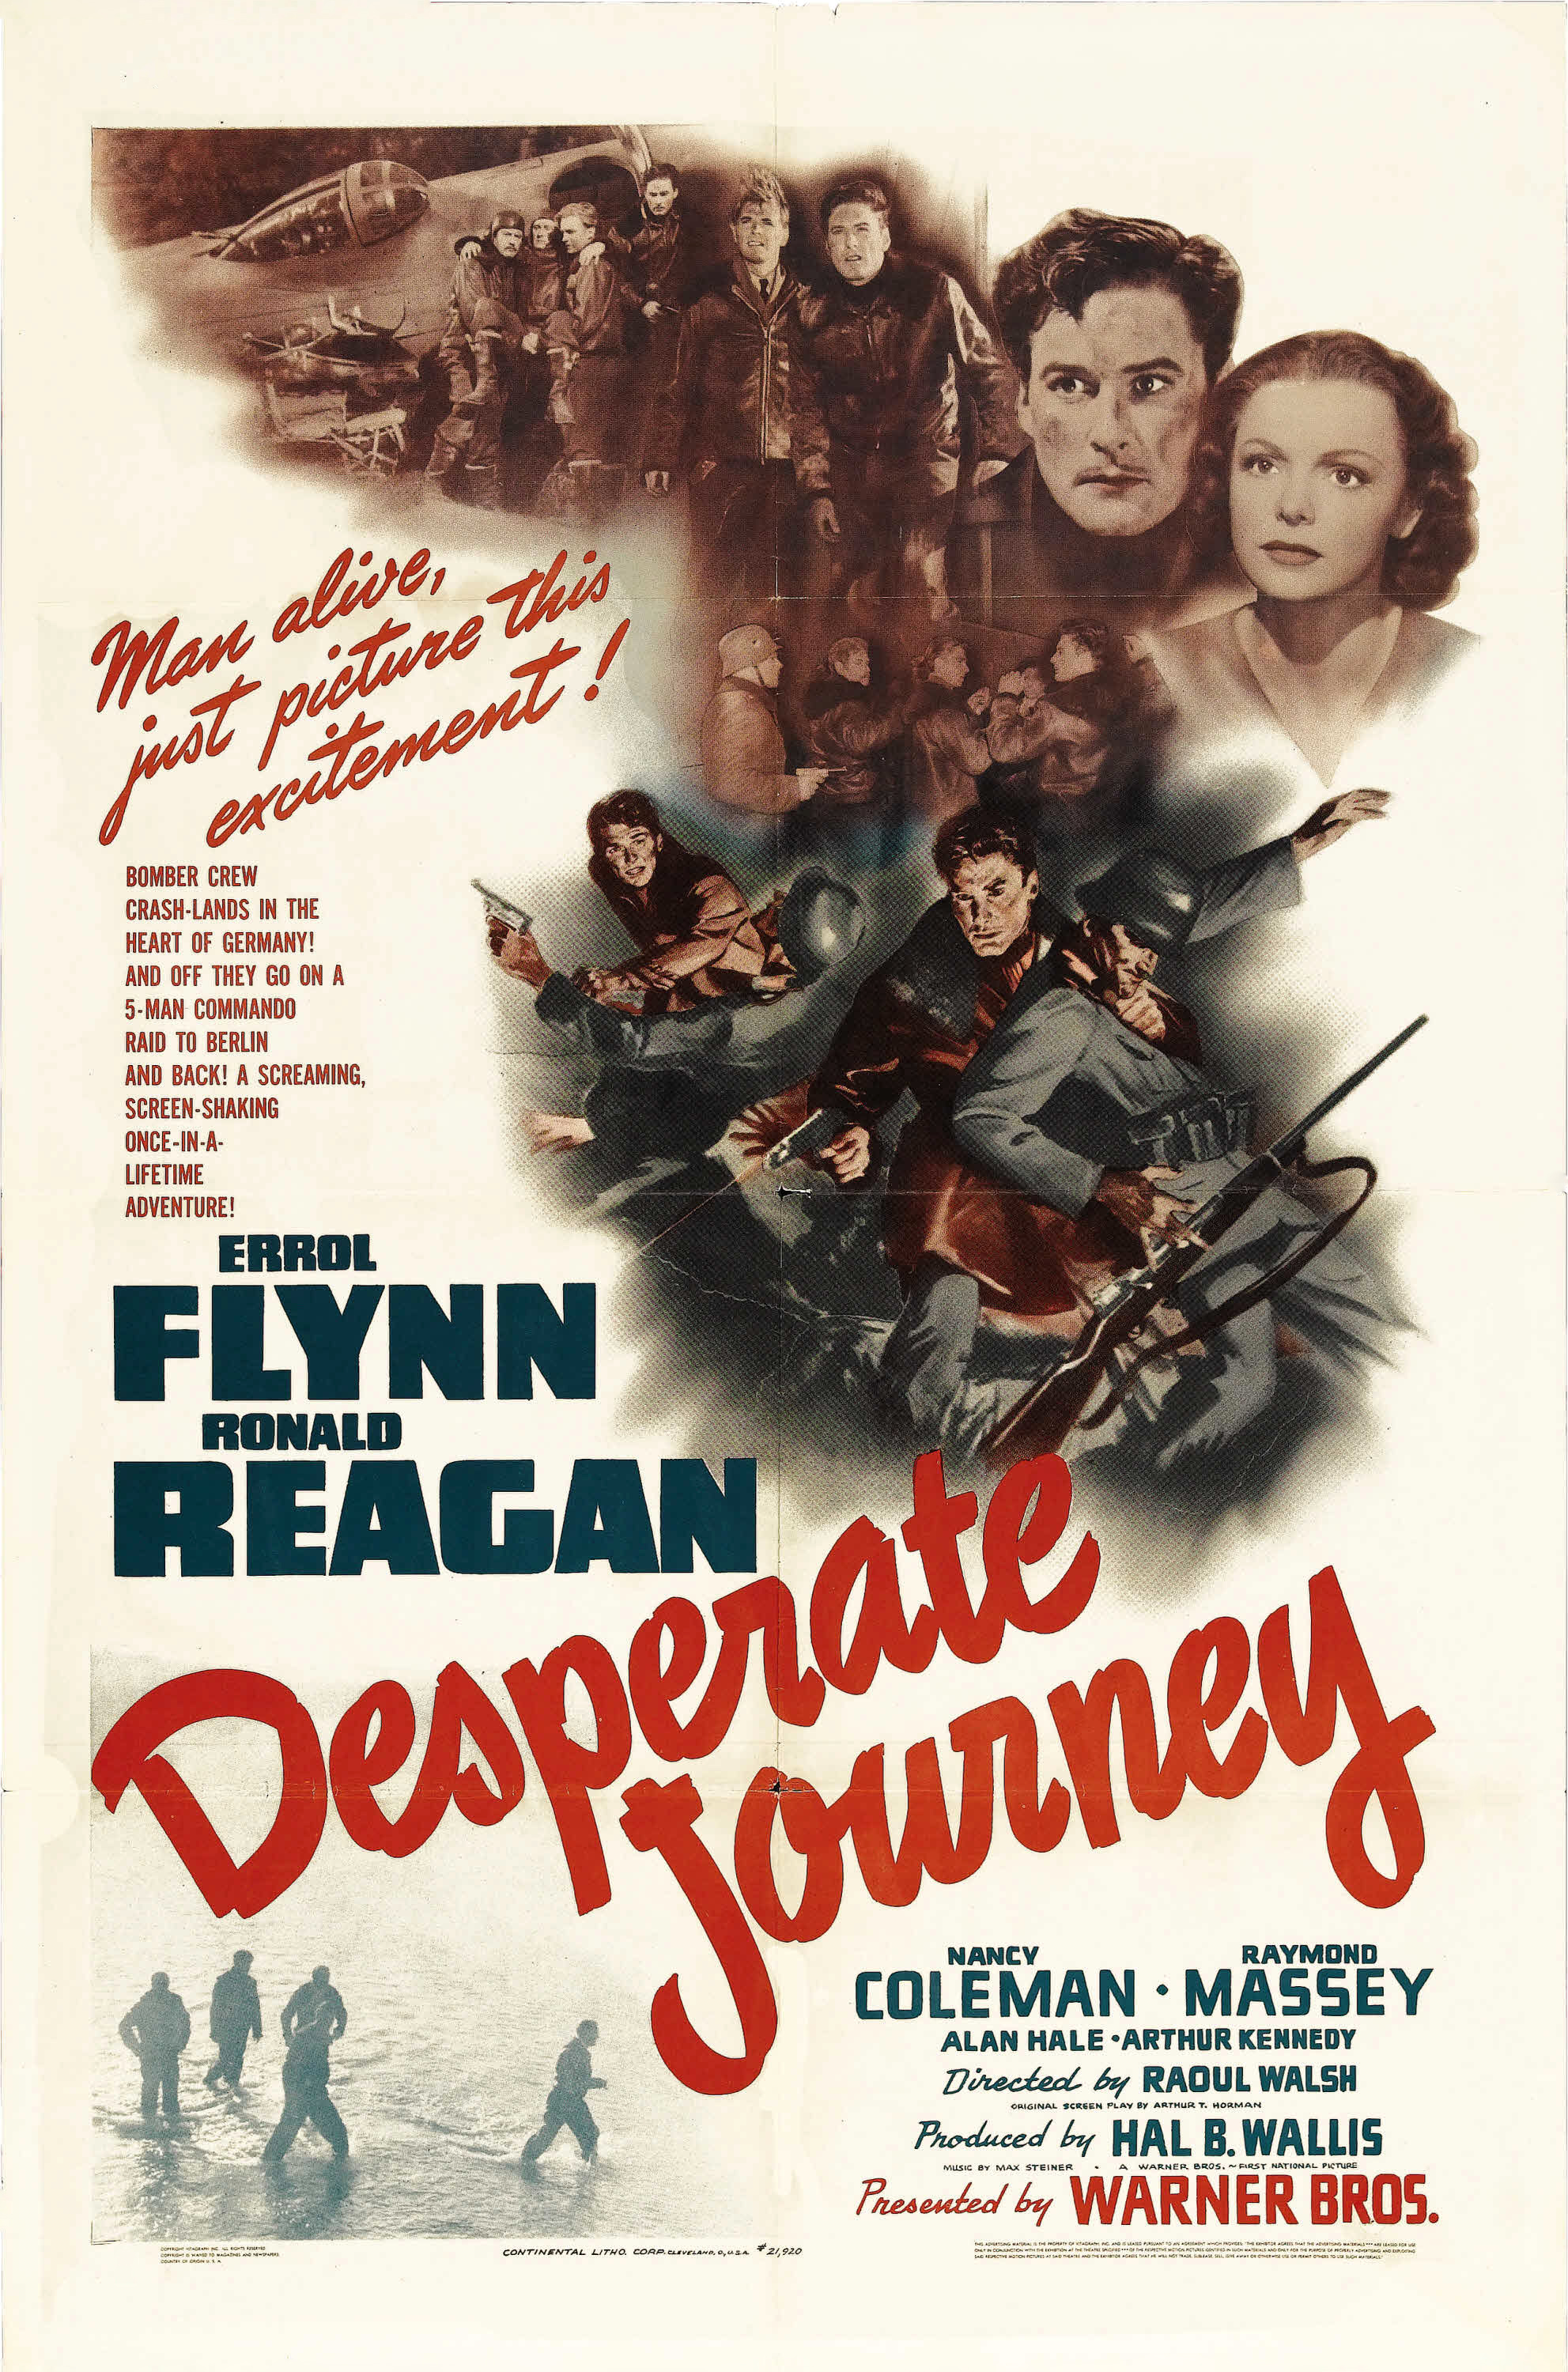 Errol Flynn, Ronald Reagan, and Nancy Coleman in Desperate Journey (1942)